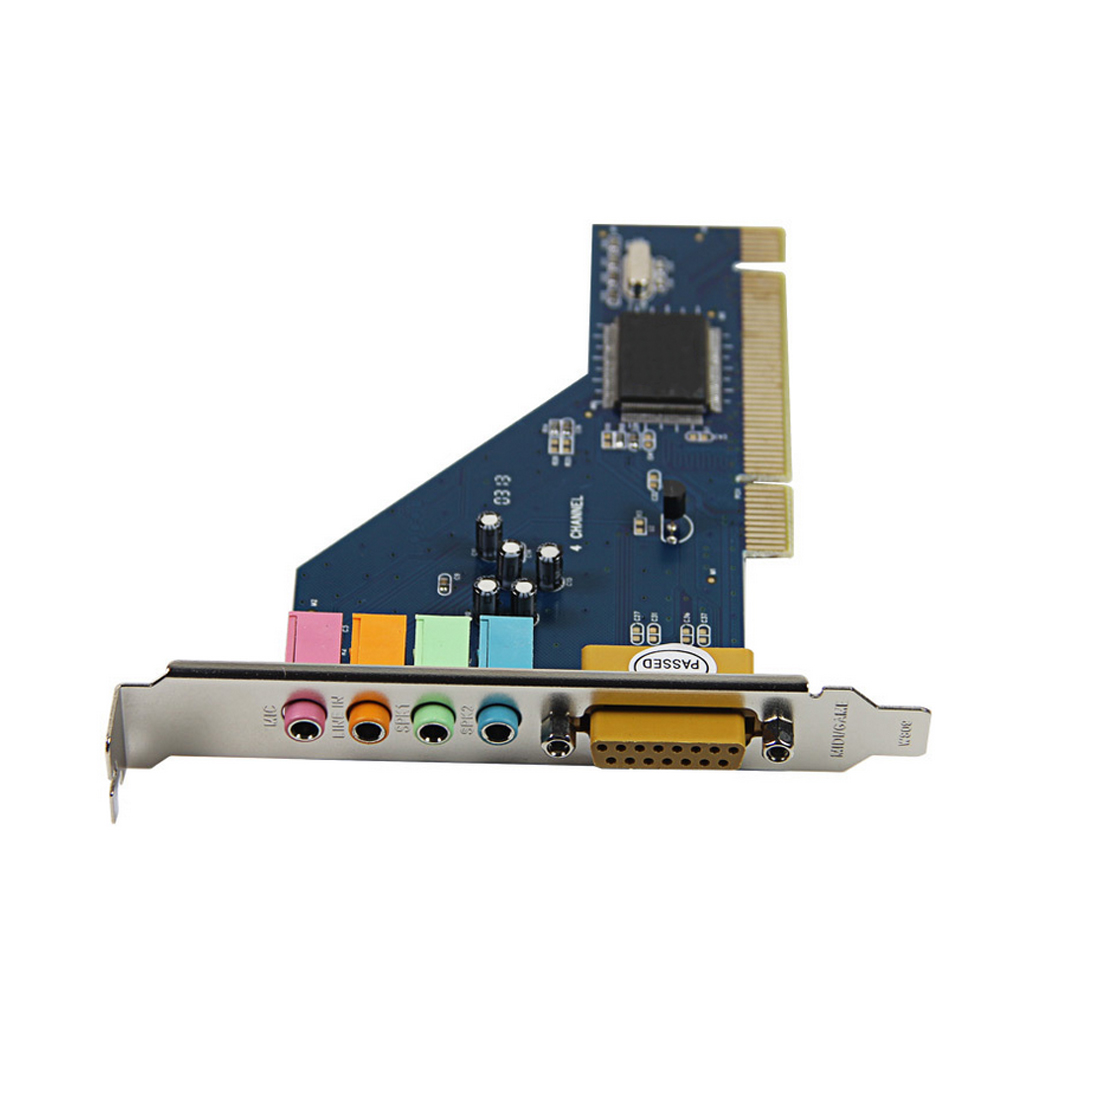 NOYOKERE Hot Sale High Quality 4 Channel 8738 Chip 3D Audio Stereo PCI Sound Card for Win7 64 Bit купить в Москве 2019